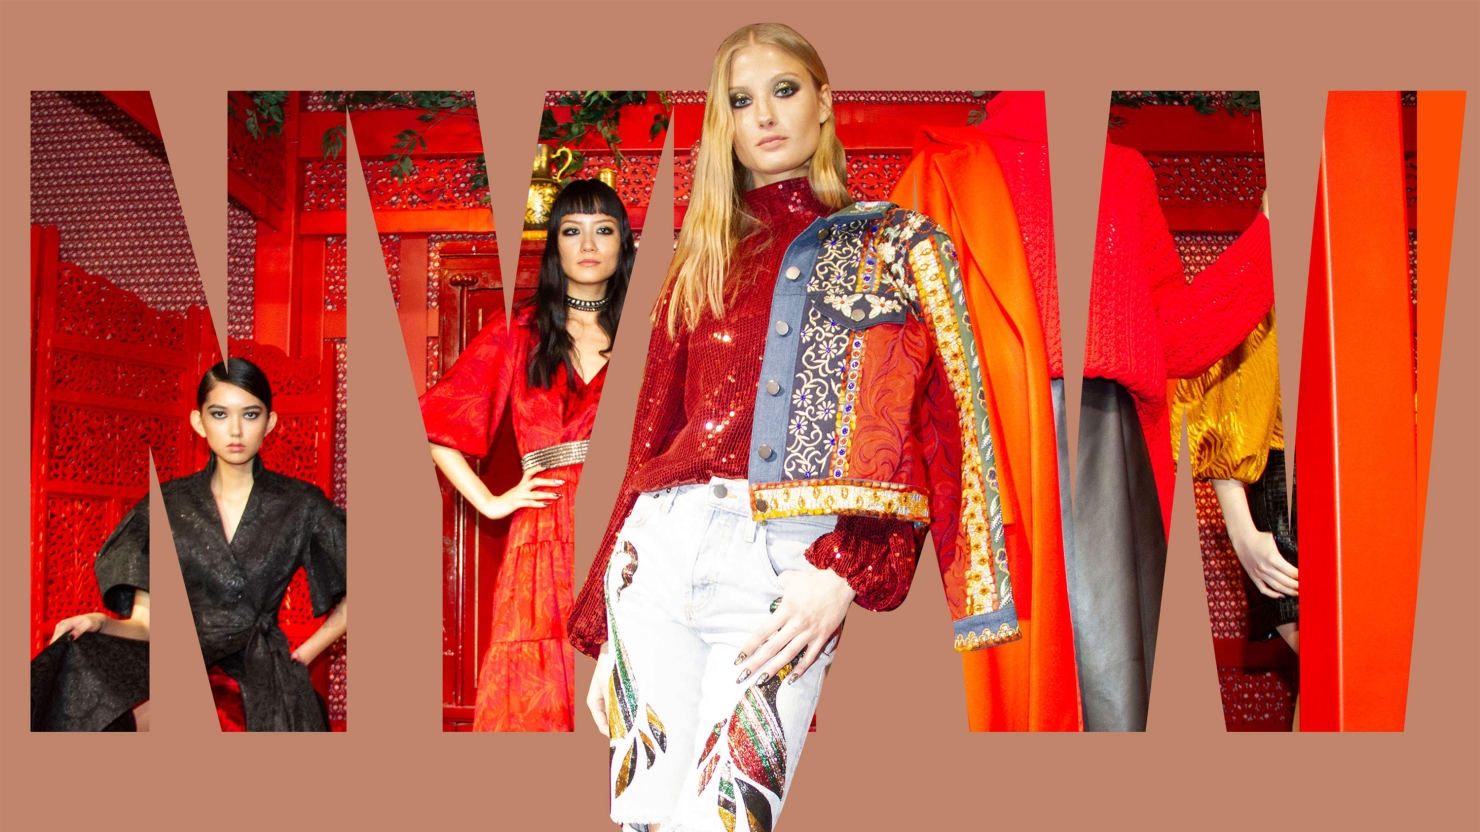 At New York Fashion Week, Alice + Olivia, Hervé Léger, Anna Sui, and Veronica Beard Glam Up a Rainy Day